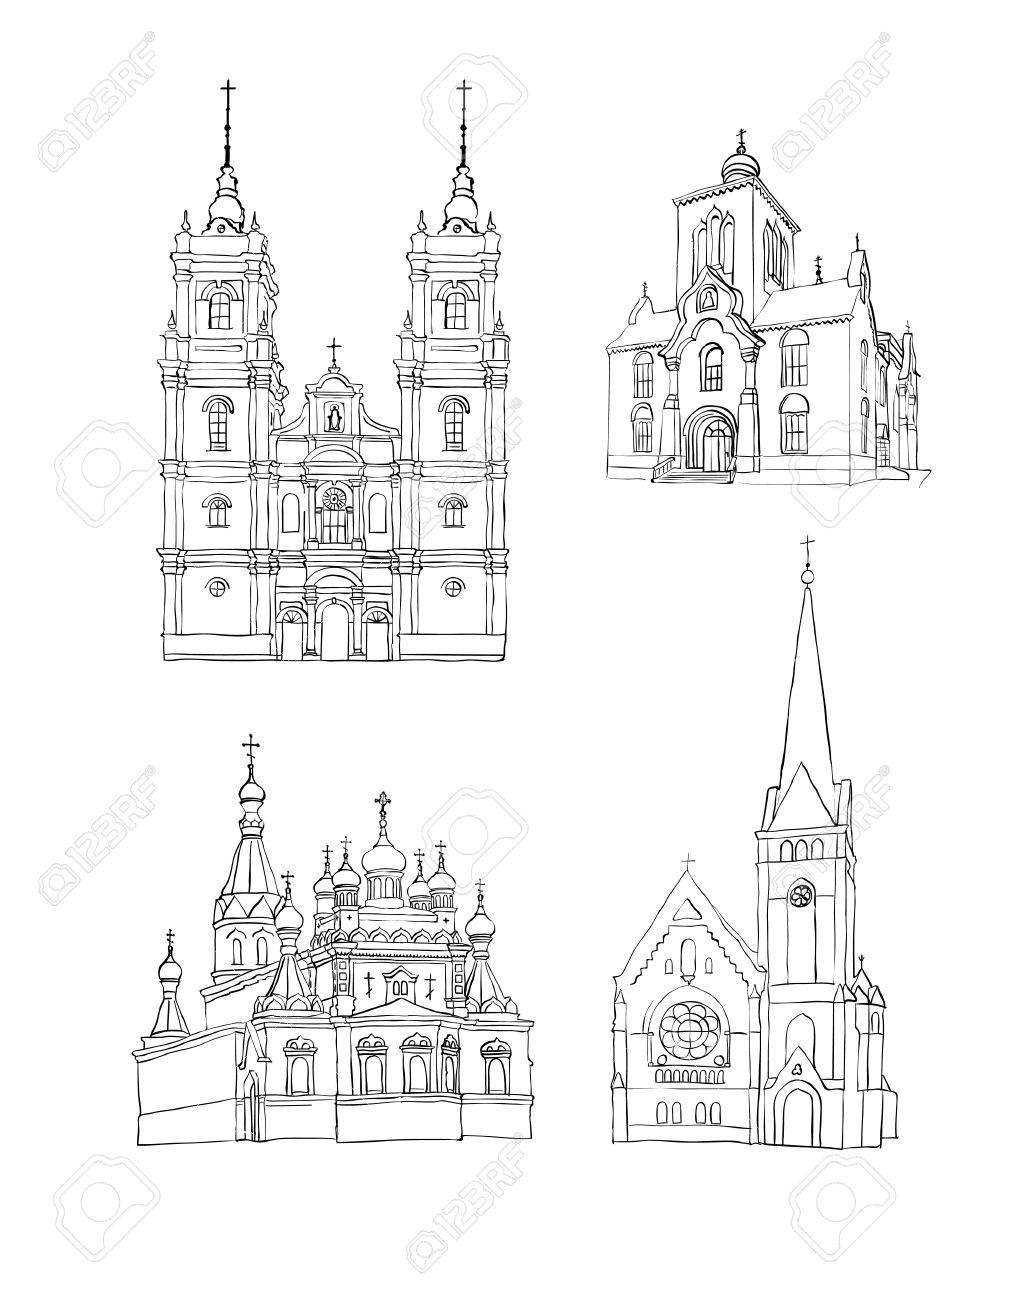 A set of sketches of churches hand drawn vector illustration stock vector 11351289